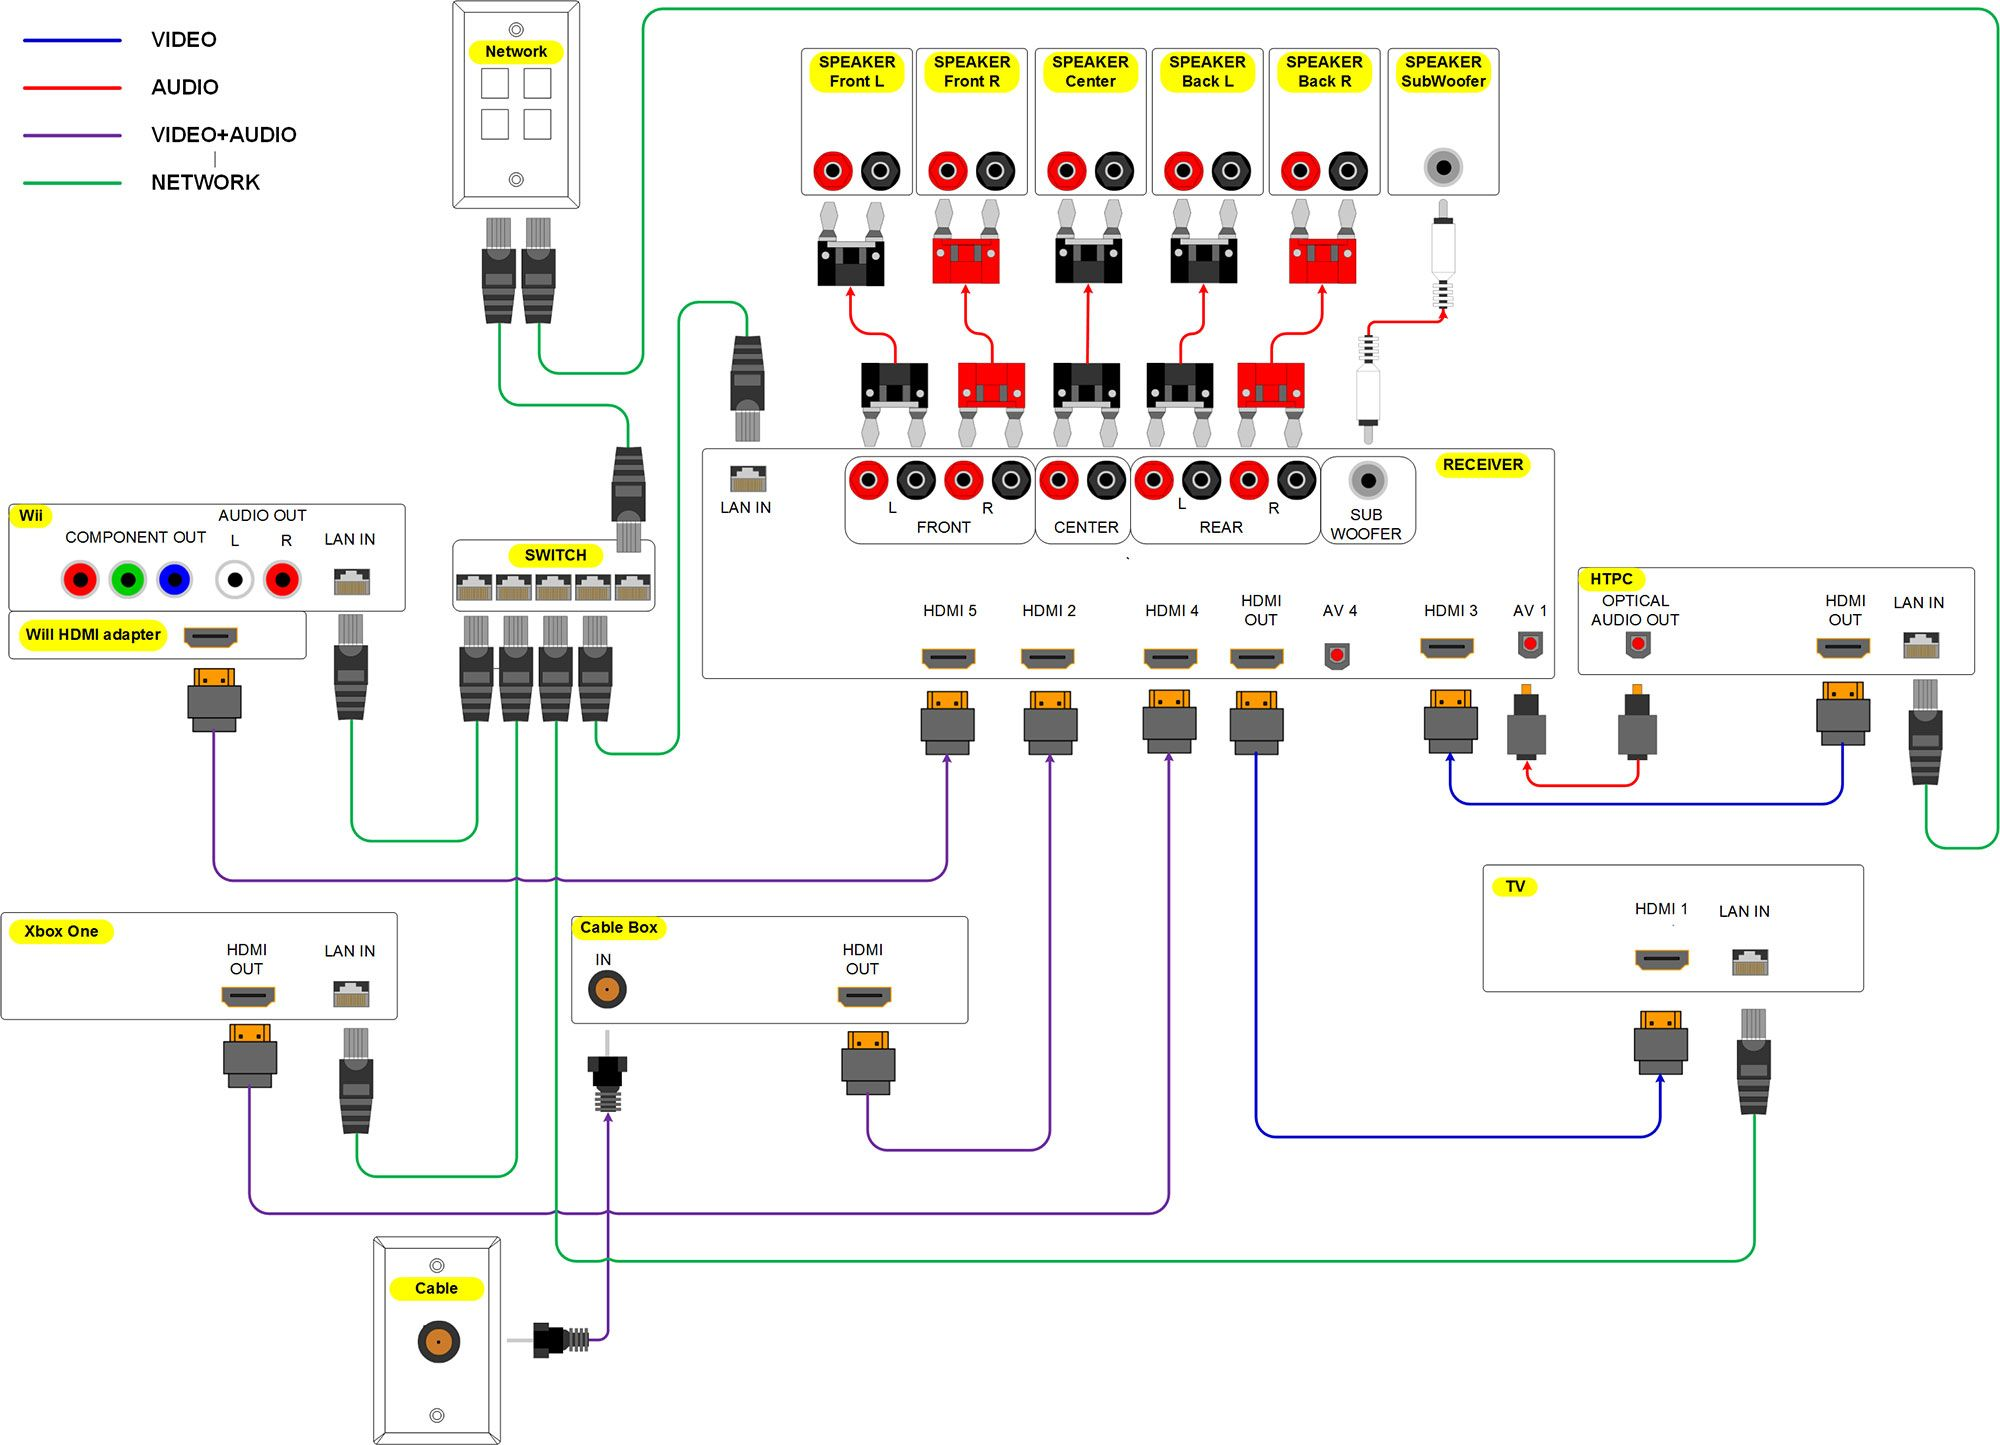 ae3ef715ed5d6ac384ec9c2b84075aef home speaker wiring diagram home audio wiring diagram \u2022 wiring house wire diagram at webbmarketing.co